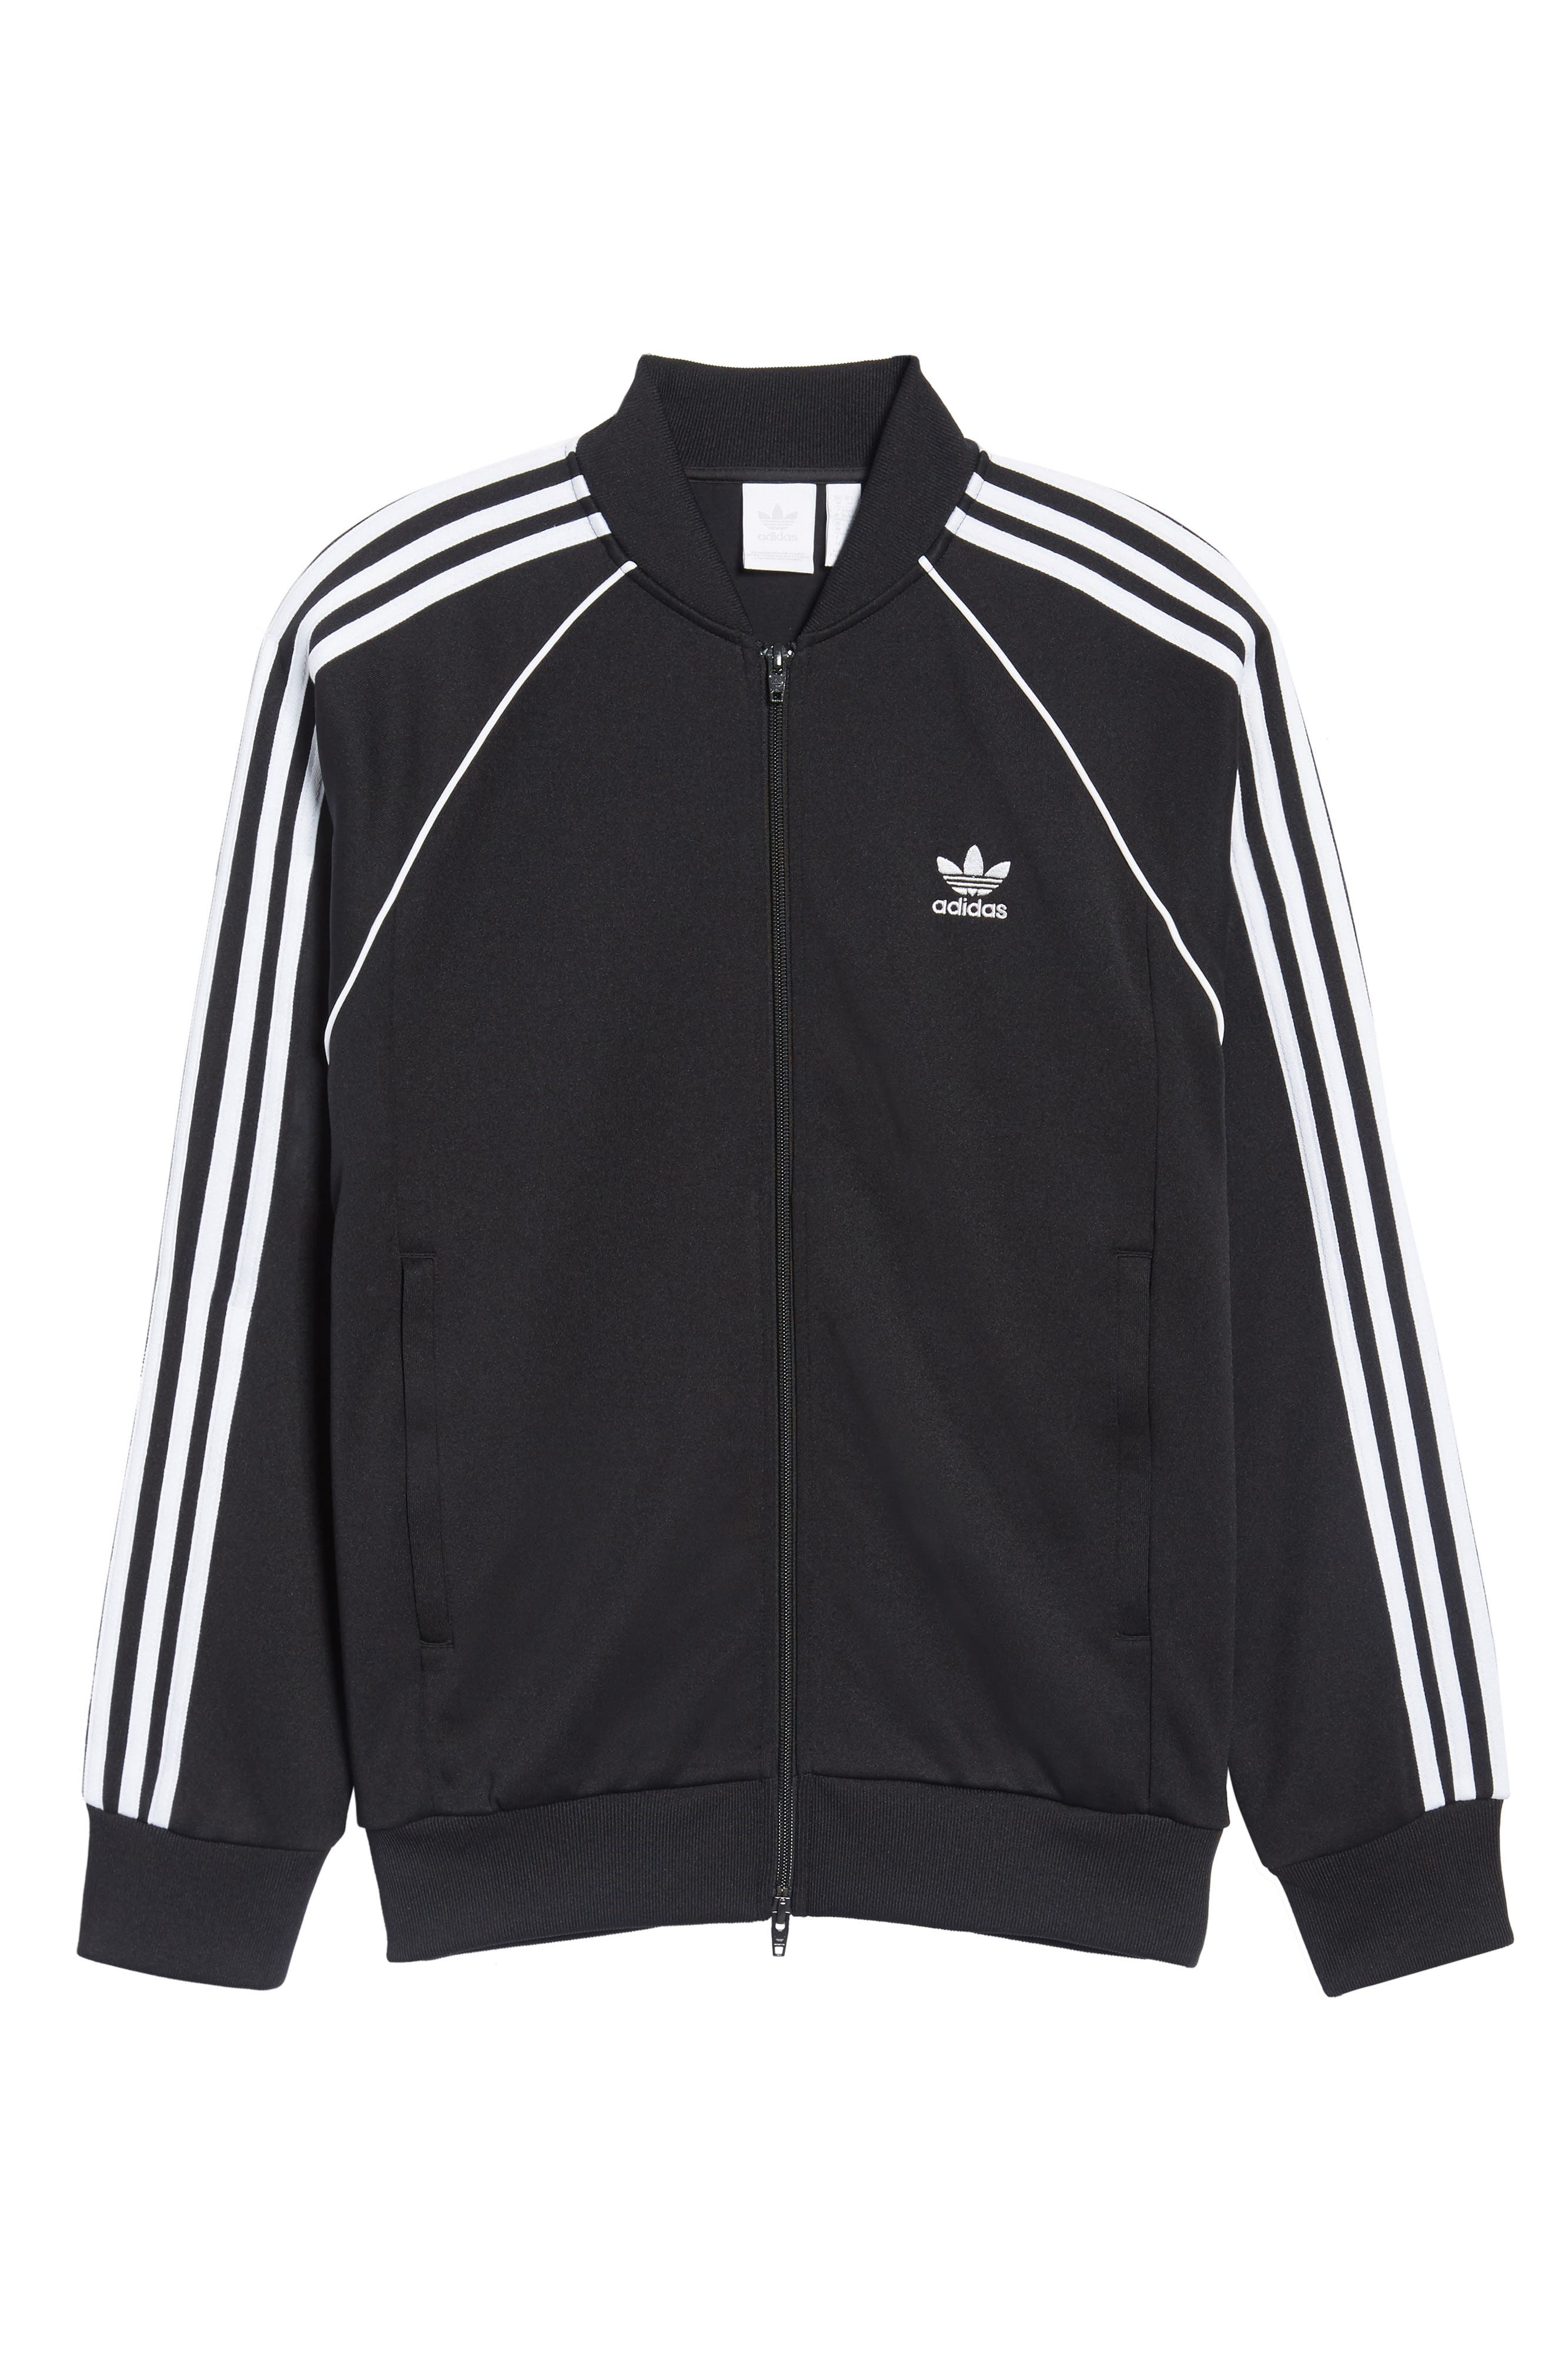 SST Track Jacket,                             Alternate thumbnail 6, color,                             BLACK